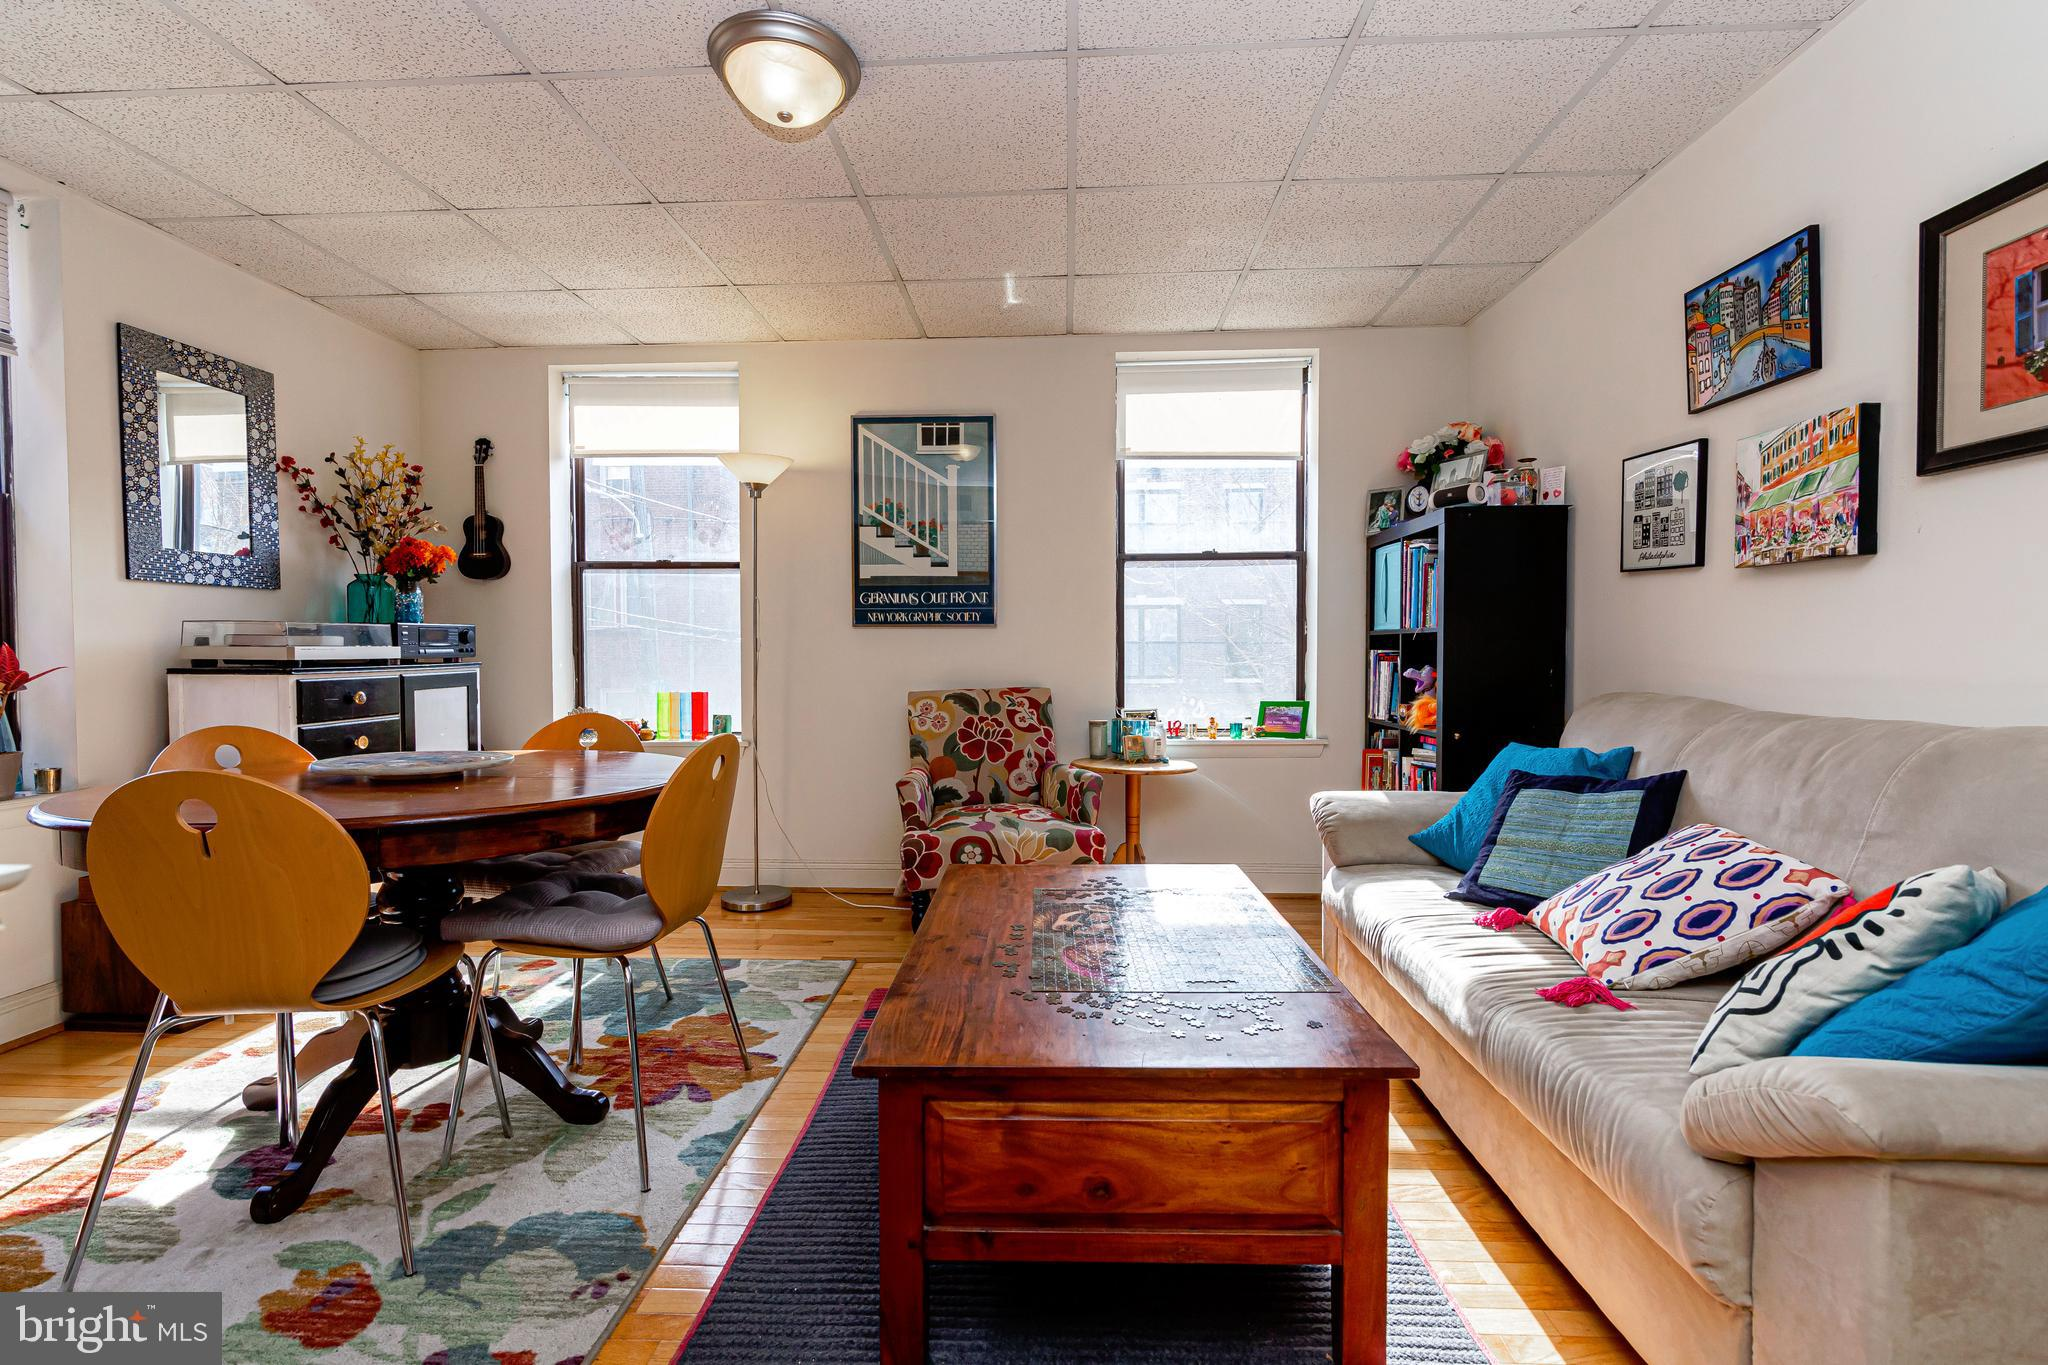 In the heart of The ITALIAN MARKET!!! This fabulous, light filled 2 bedroom BI-LEVEL apartment with SOUTH and EASTERN EXPOSURES is available for RENT. First floor boasts open kitchen all overlooking a huge living and dining area. Second floor consists of,  2 well proportioned bedrooms, one of which is ideal for a in-home office space. Central air, washer and dryer in unit. Just minutes from Sabrina's, Morning Glory, Fitzwater Cafe, Hawthornes, and DiBruno Brother's.  A MUST SEE!!!